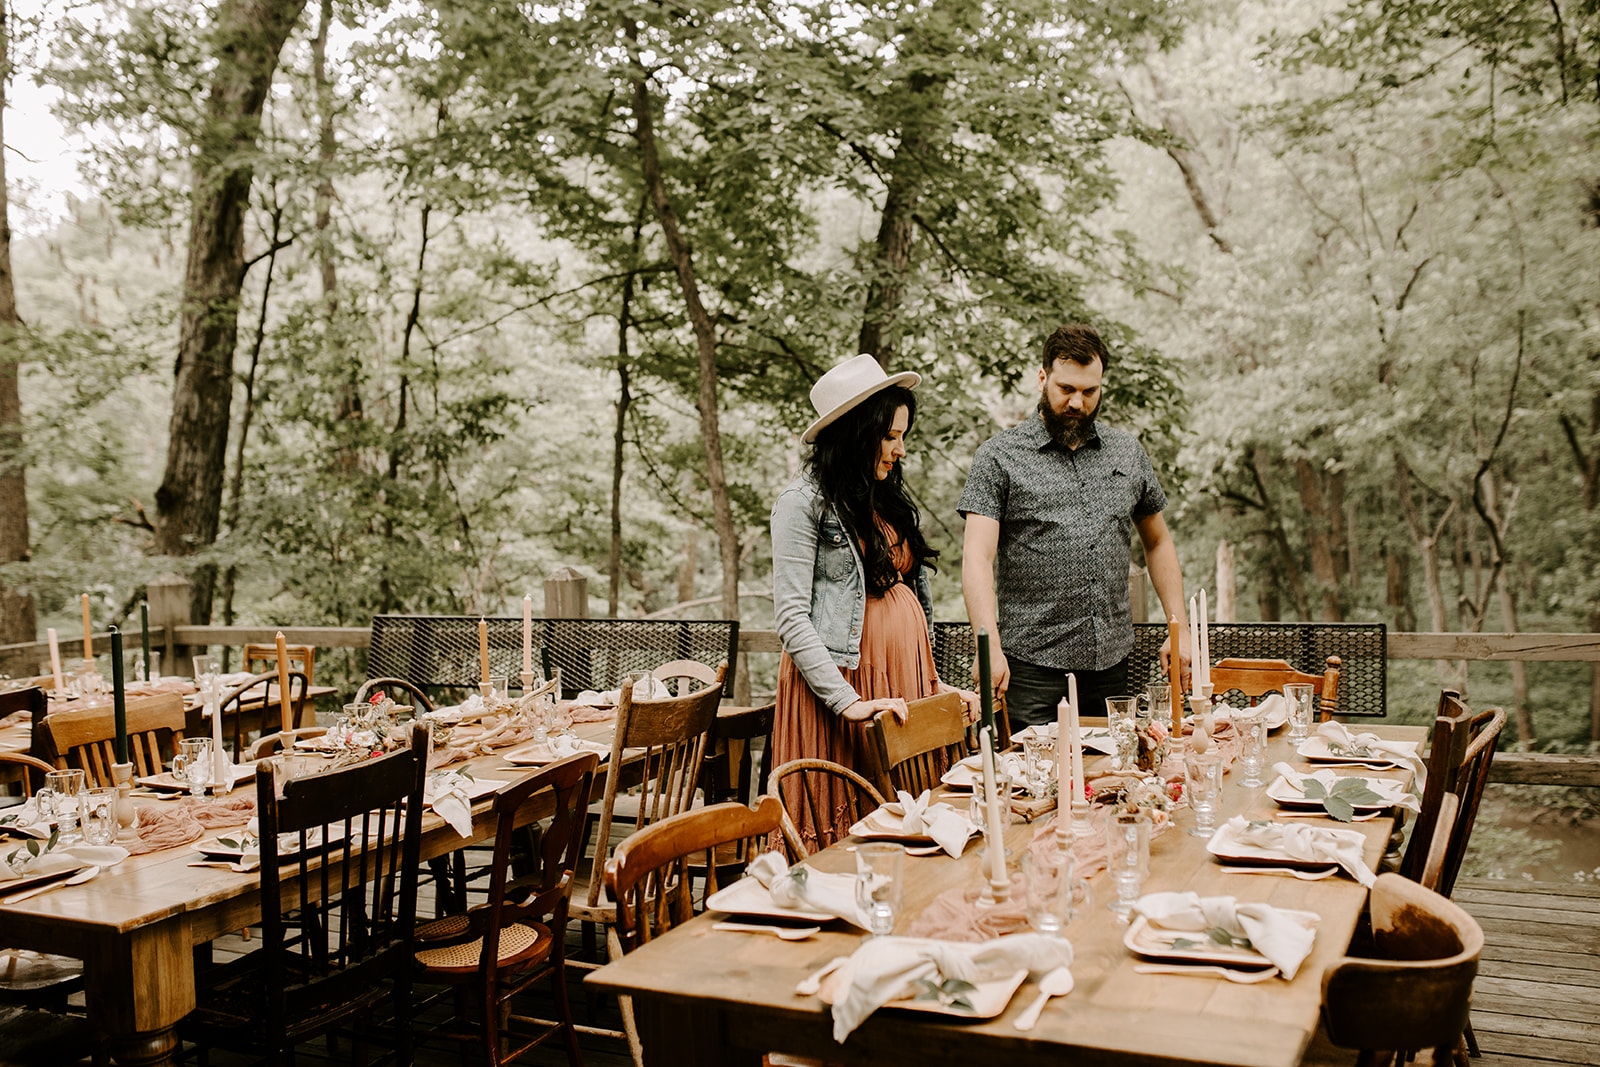 Natiure Inspired Boho Baby Shower at Lake of the Woods with He & She Weddings, Pollen and Pastry, HIlary Elise Photo, Snassy Crafter and Spruce Rentals